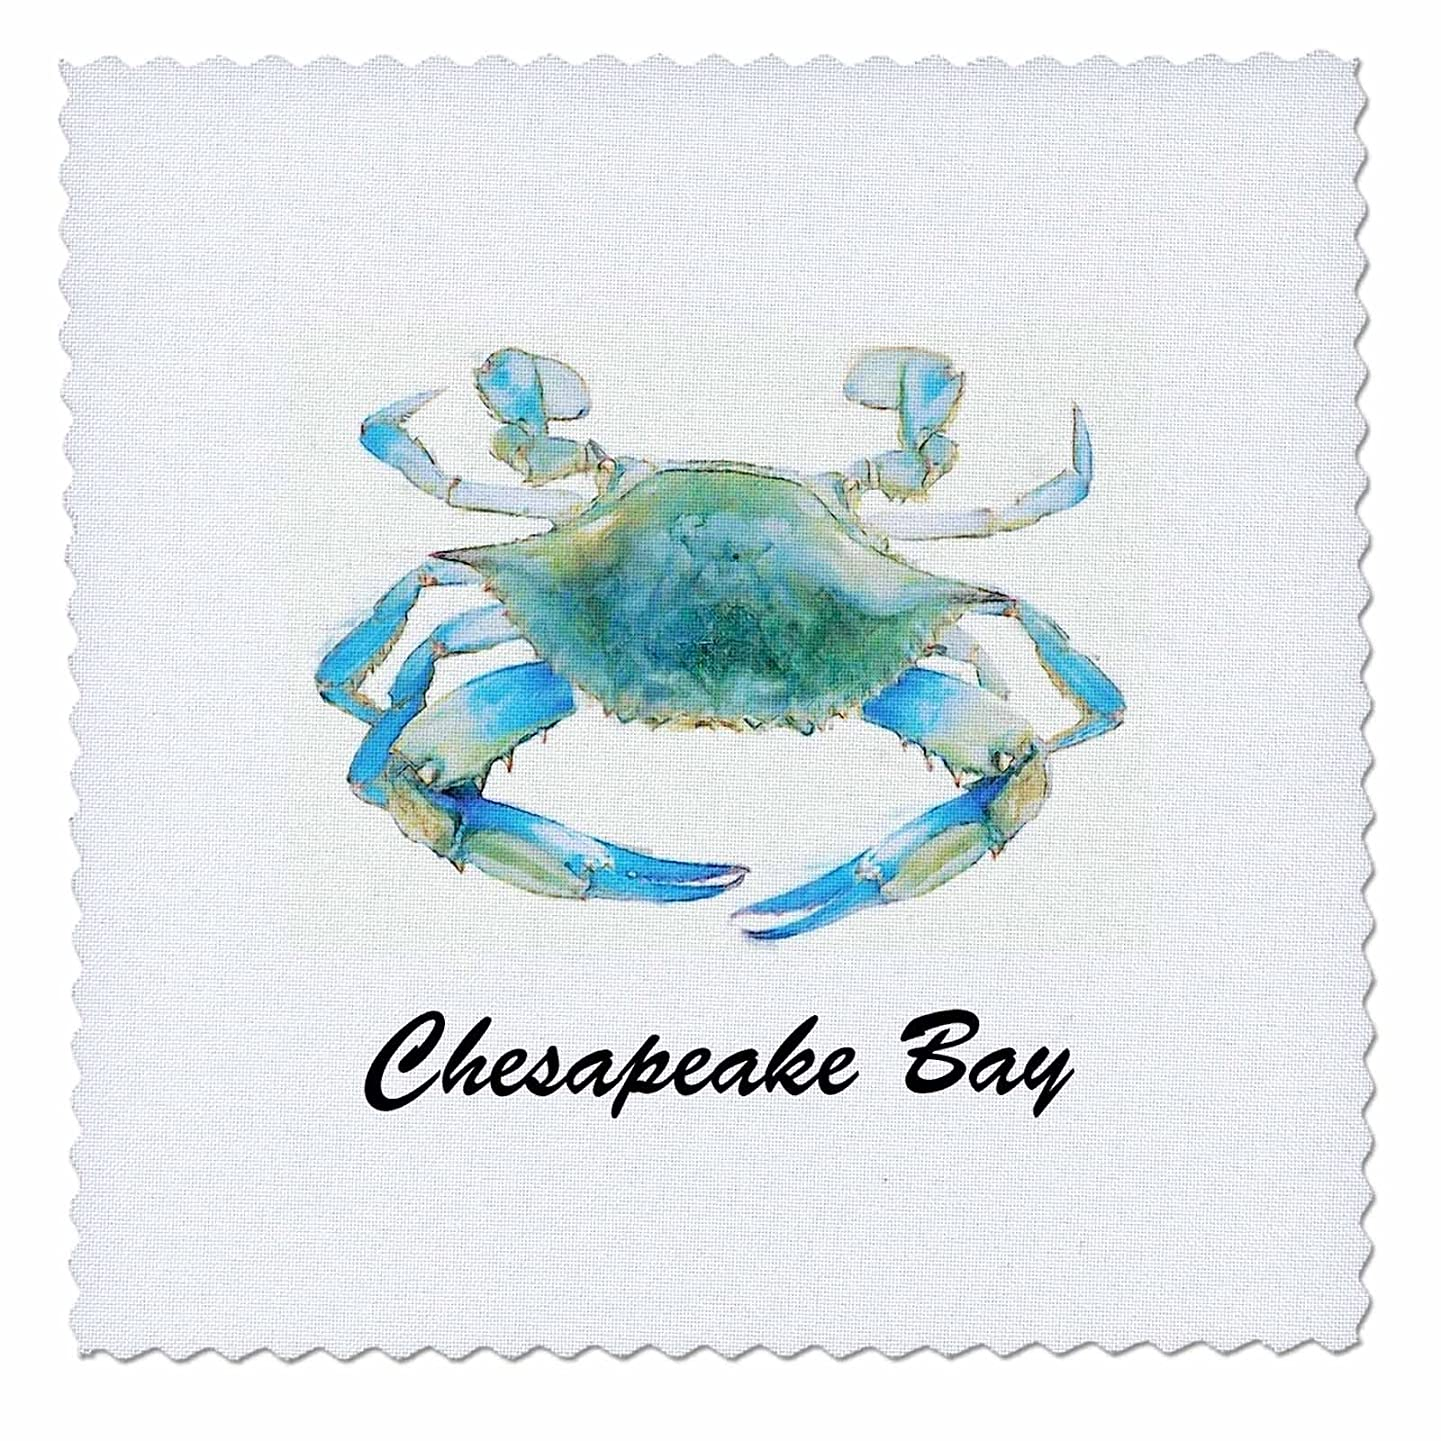 3dRose qs_128181_6 Chesapeake Bay Blue Crab Maryland Quilt Square, 16 by 16-Inch